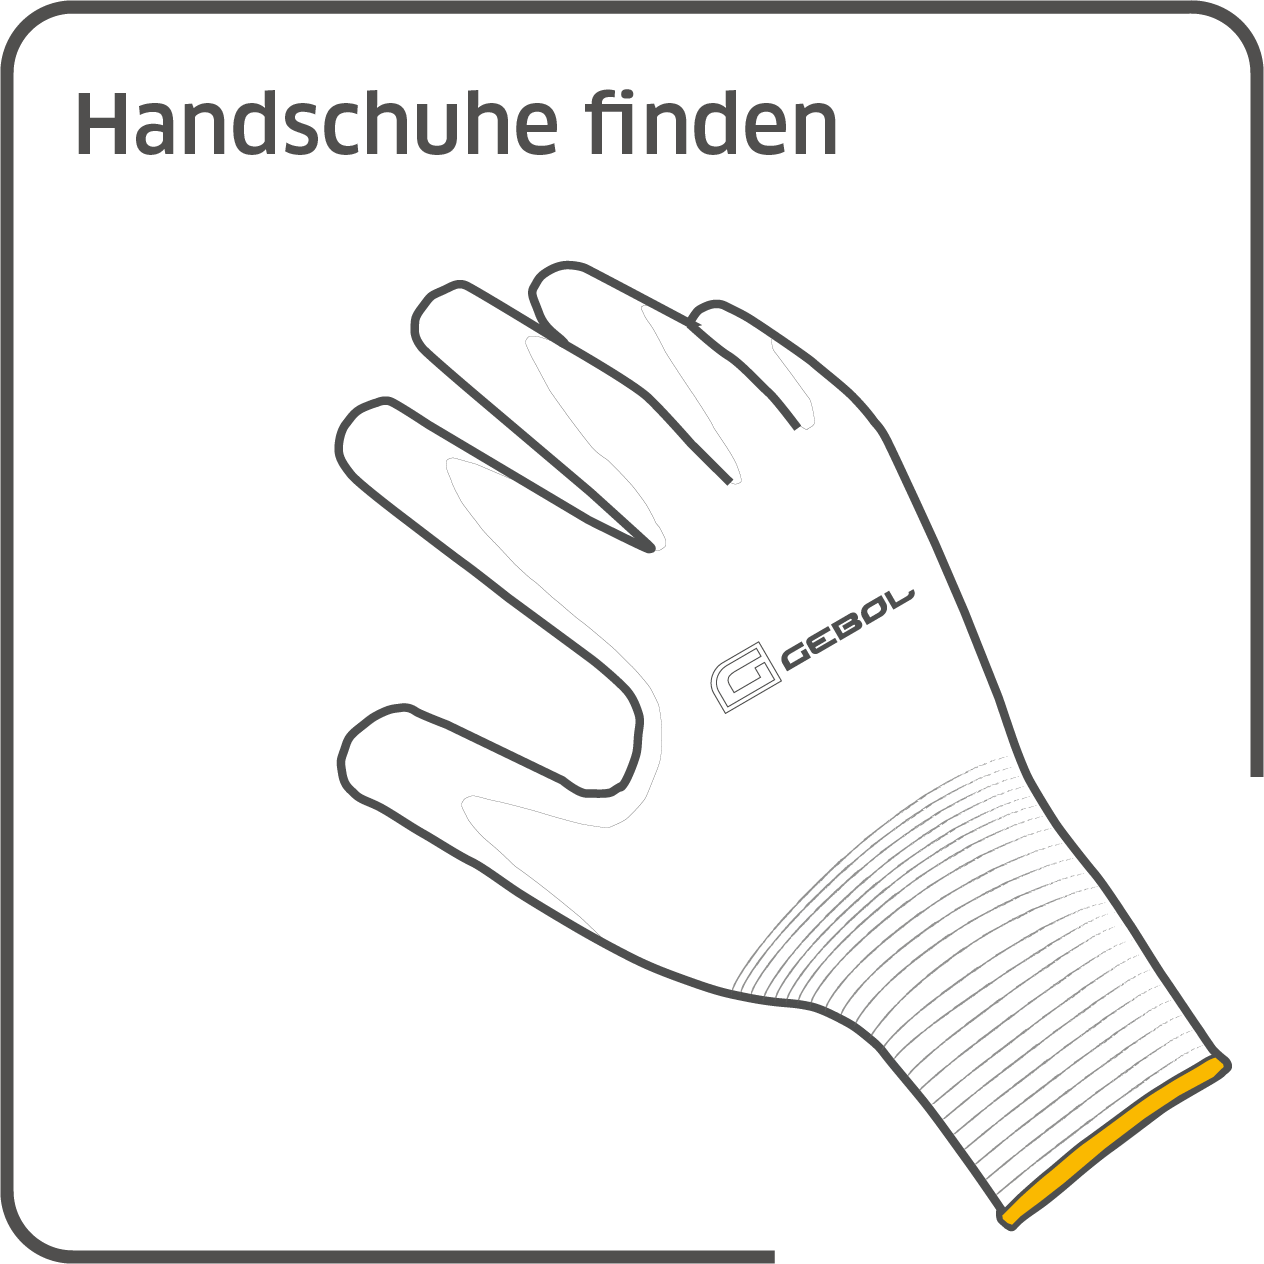 Pictogrammen website handschoenen